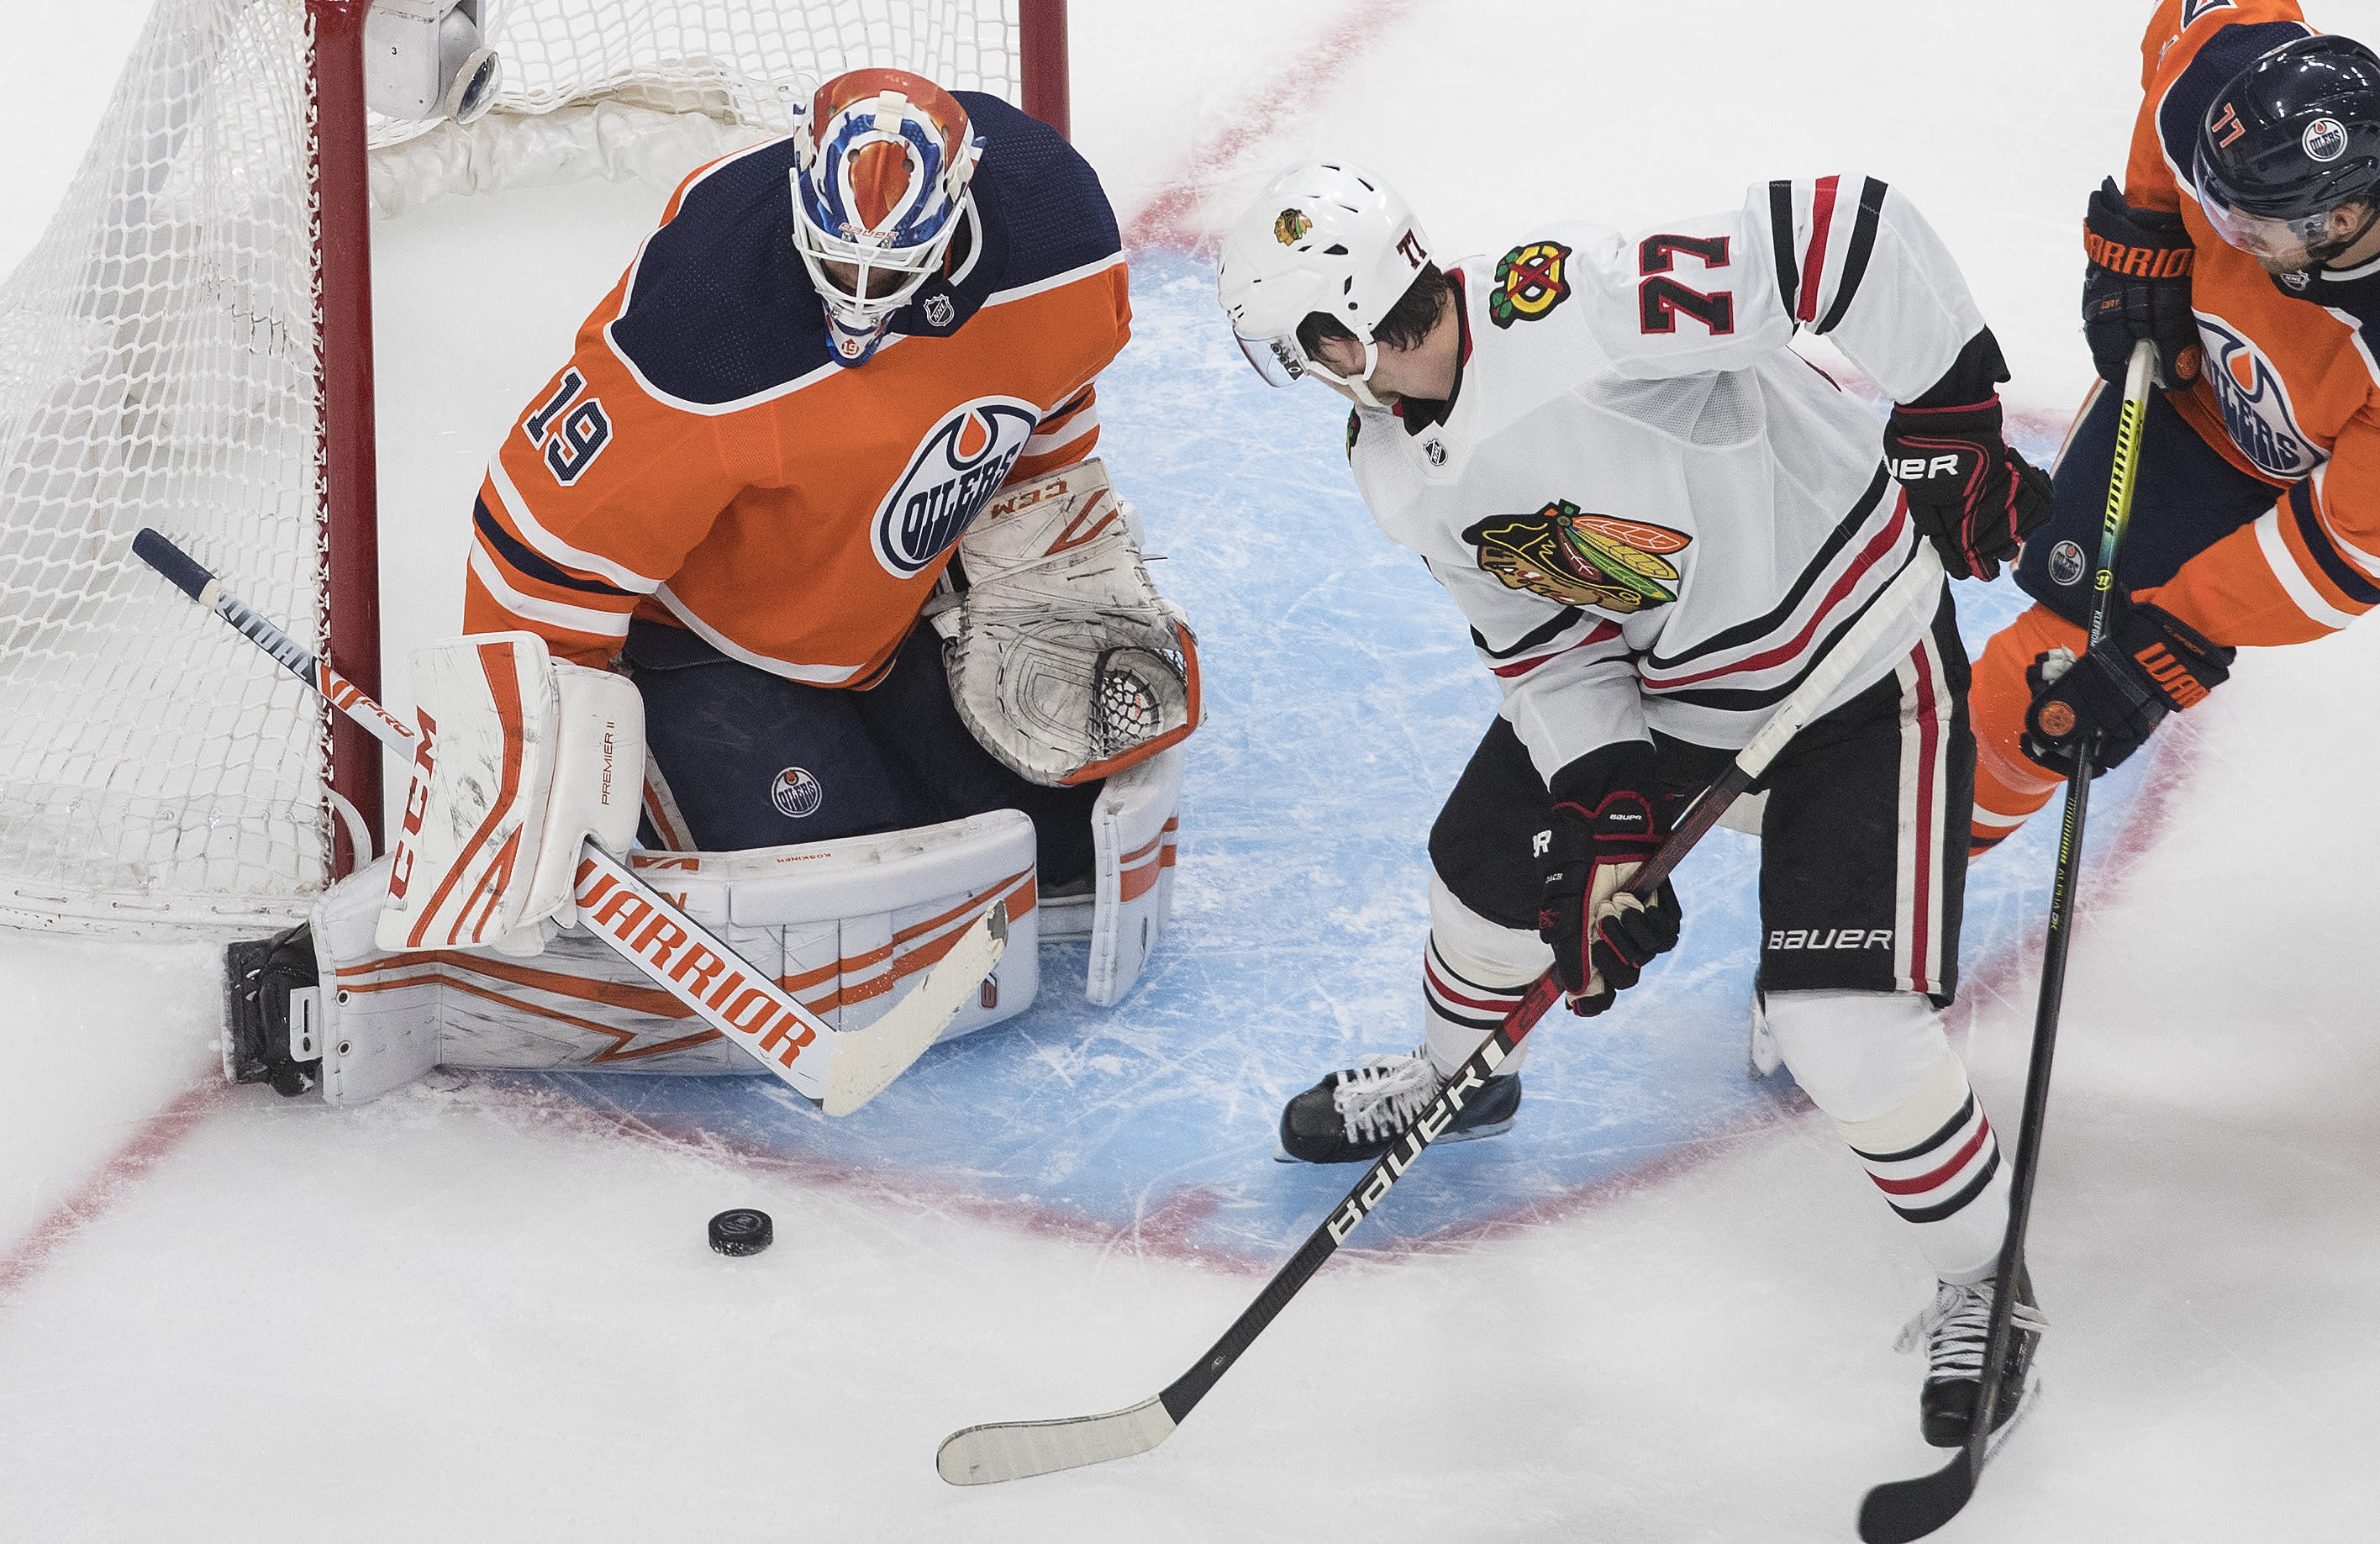 Edmonton Oilers goalie Mikko Koskinen (19) makes the save against Chicago Blackhawks' Kirby Dach (77) during second-period NHL hockey Stanley Cup playoff game action in Edmonton, Alberta, Saturday, Aug. 1, 2020. (Jason Franson/The Canadian Press via AP)